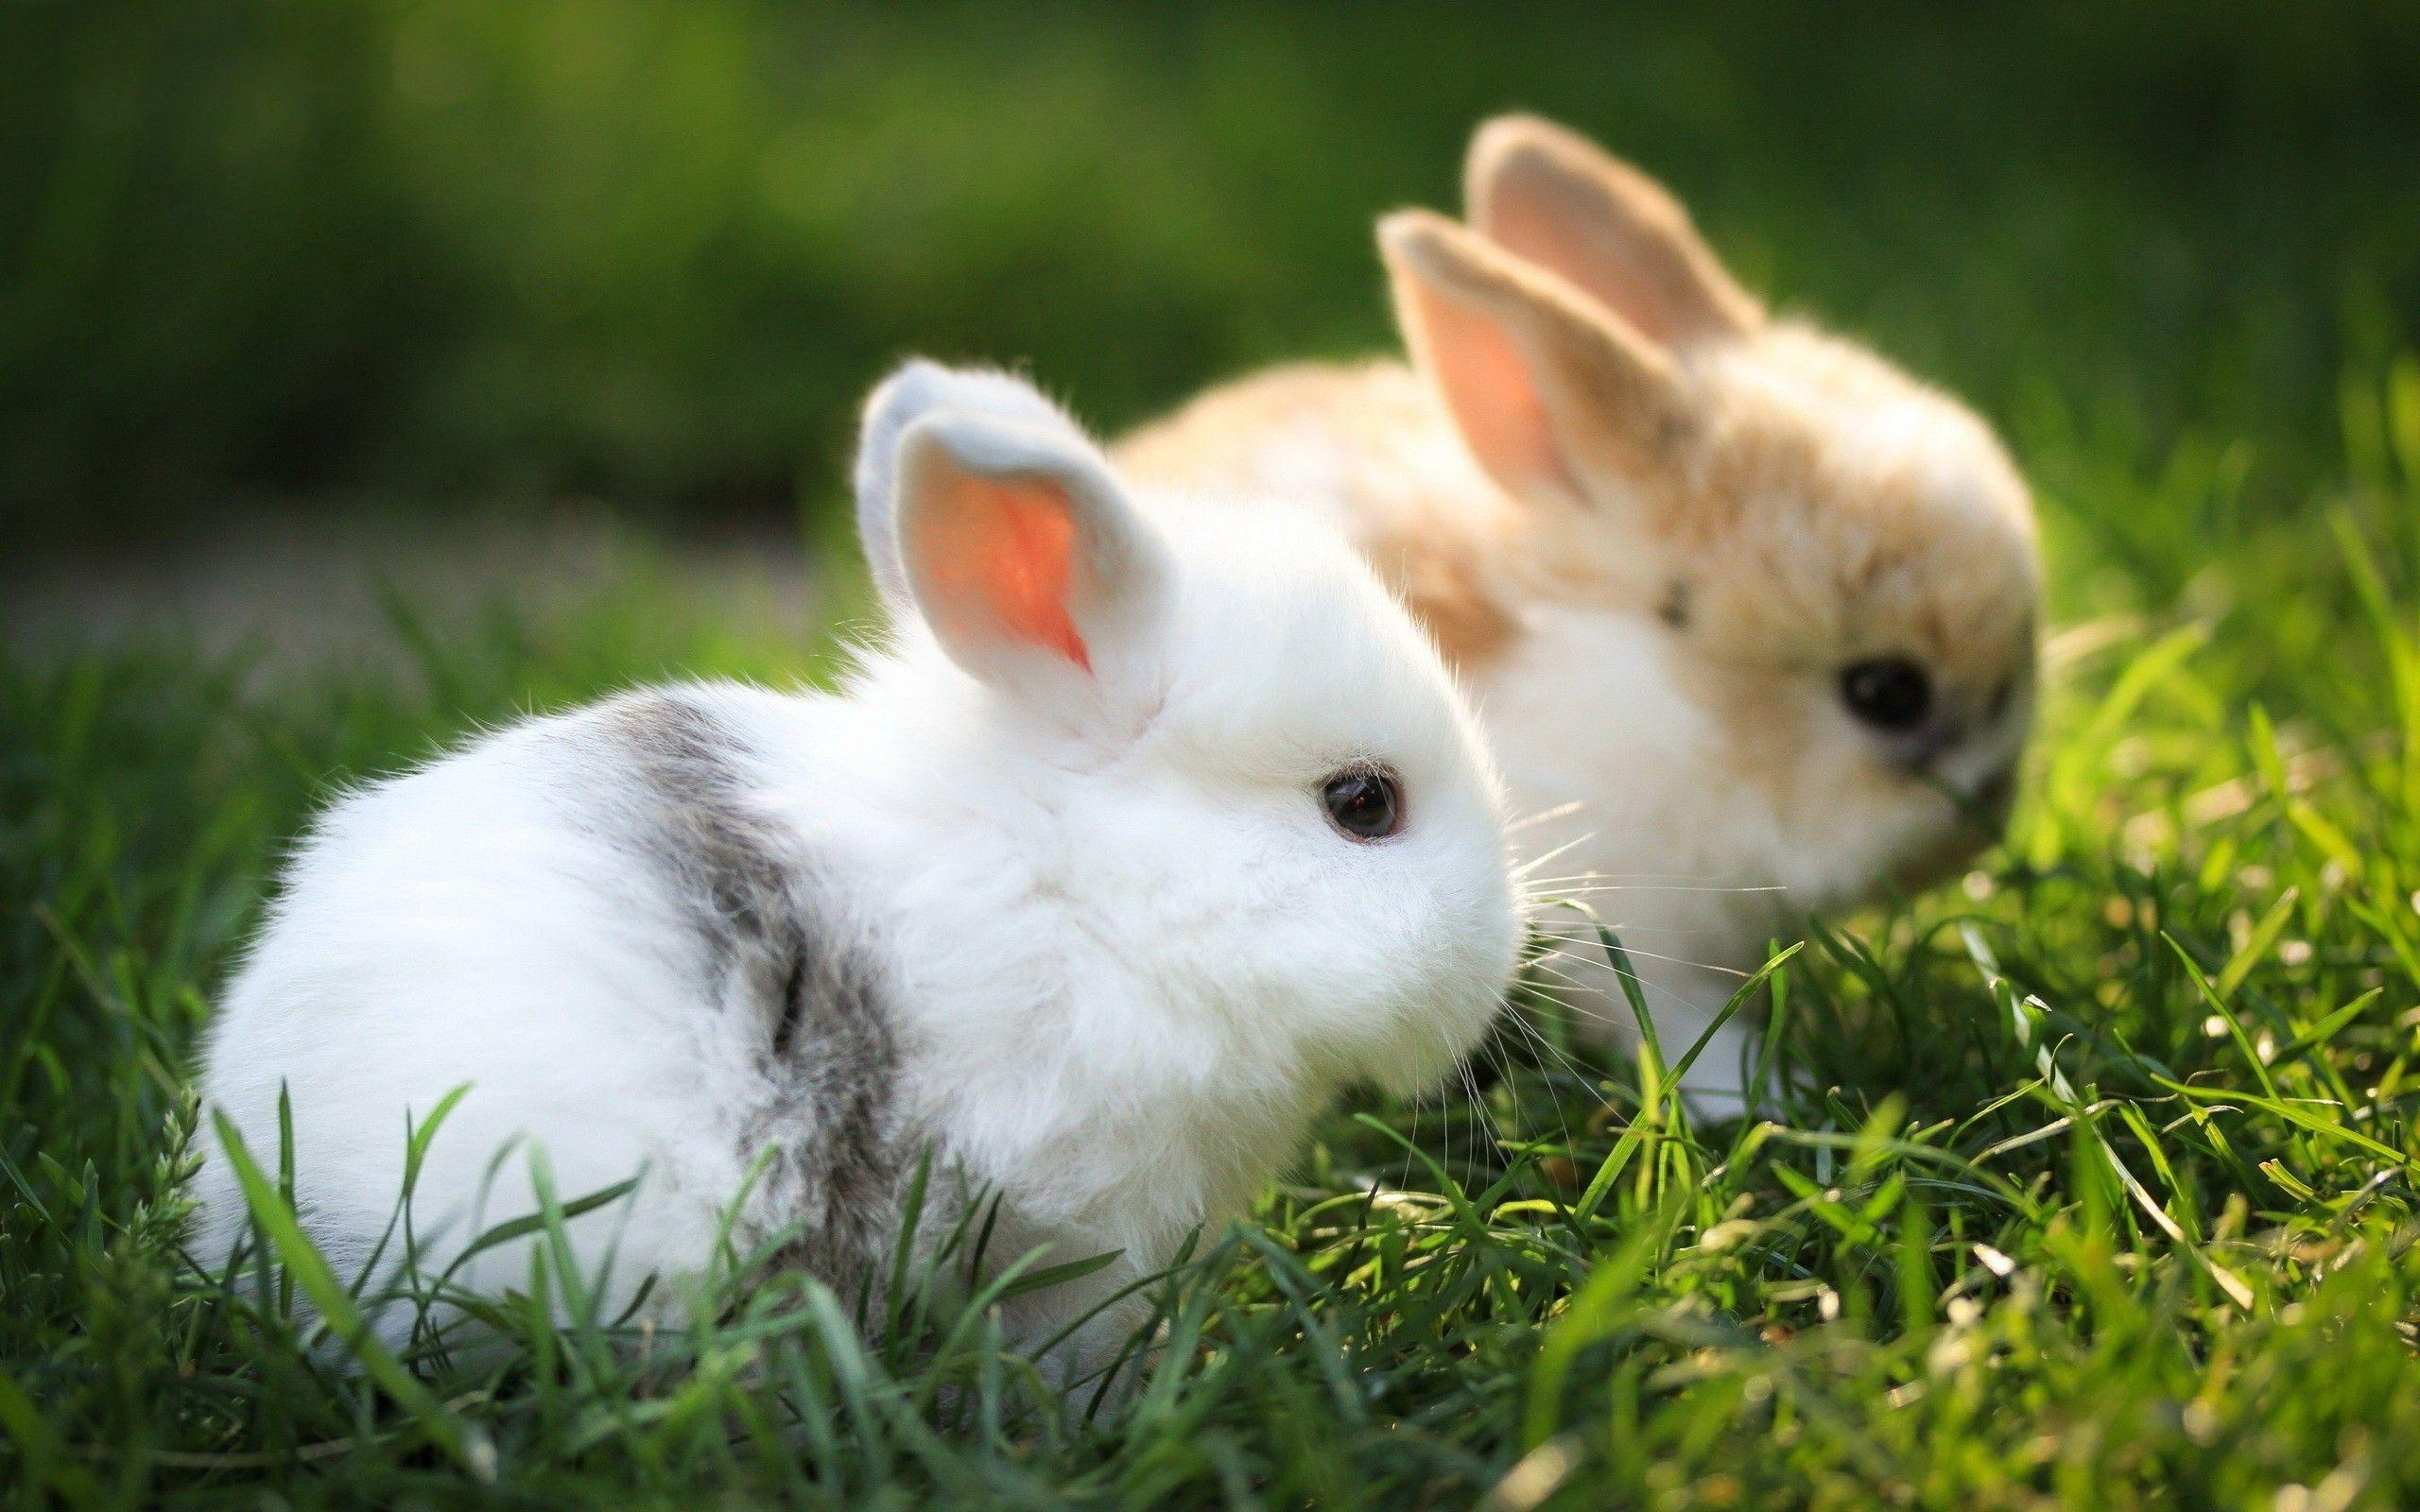 Baby Bunny Cool HD Wallpapers Picture on ScreenCrot